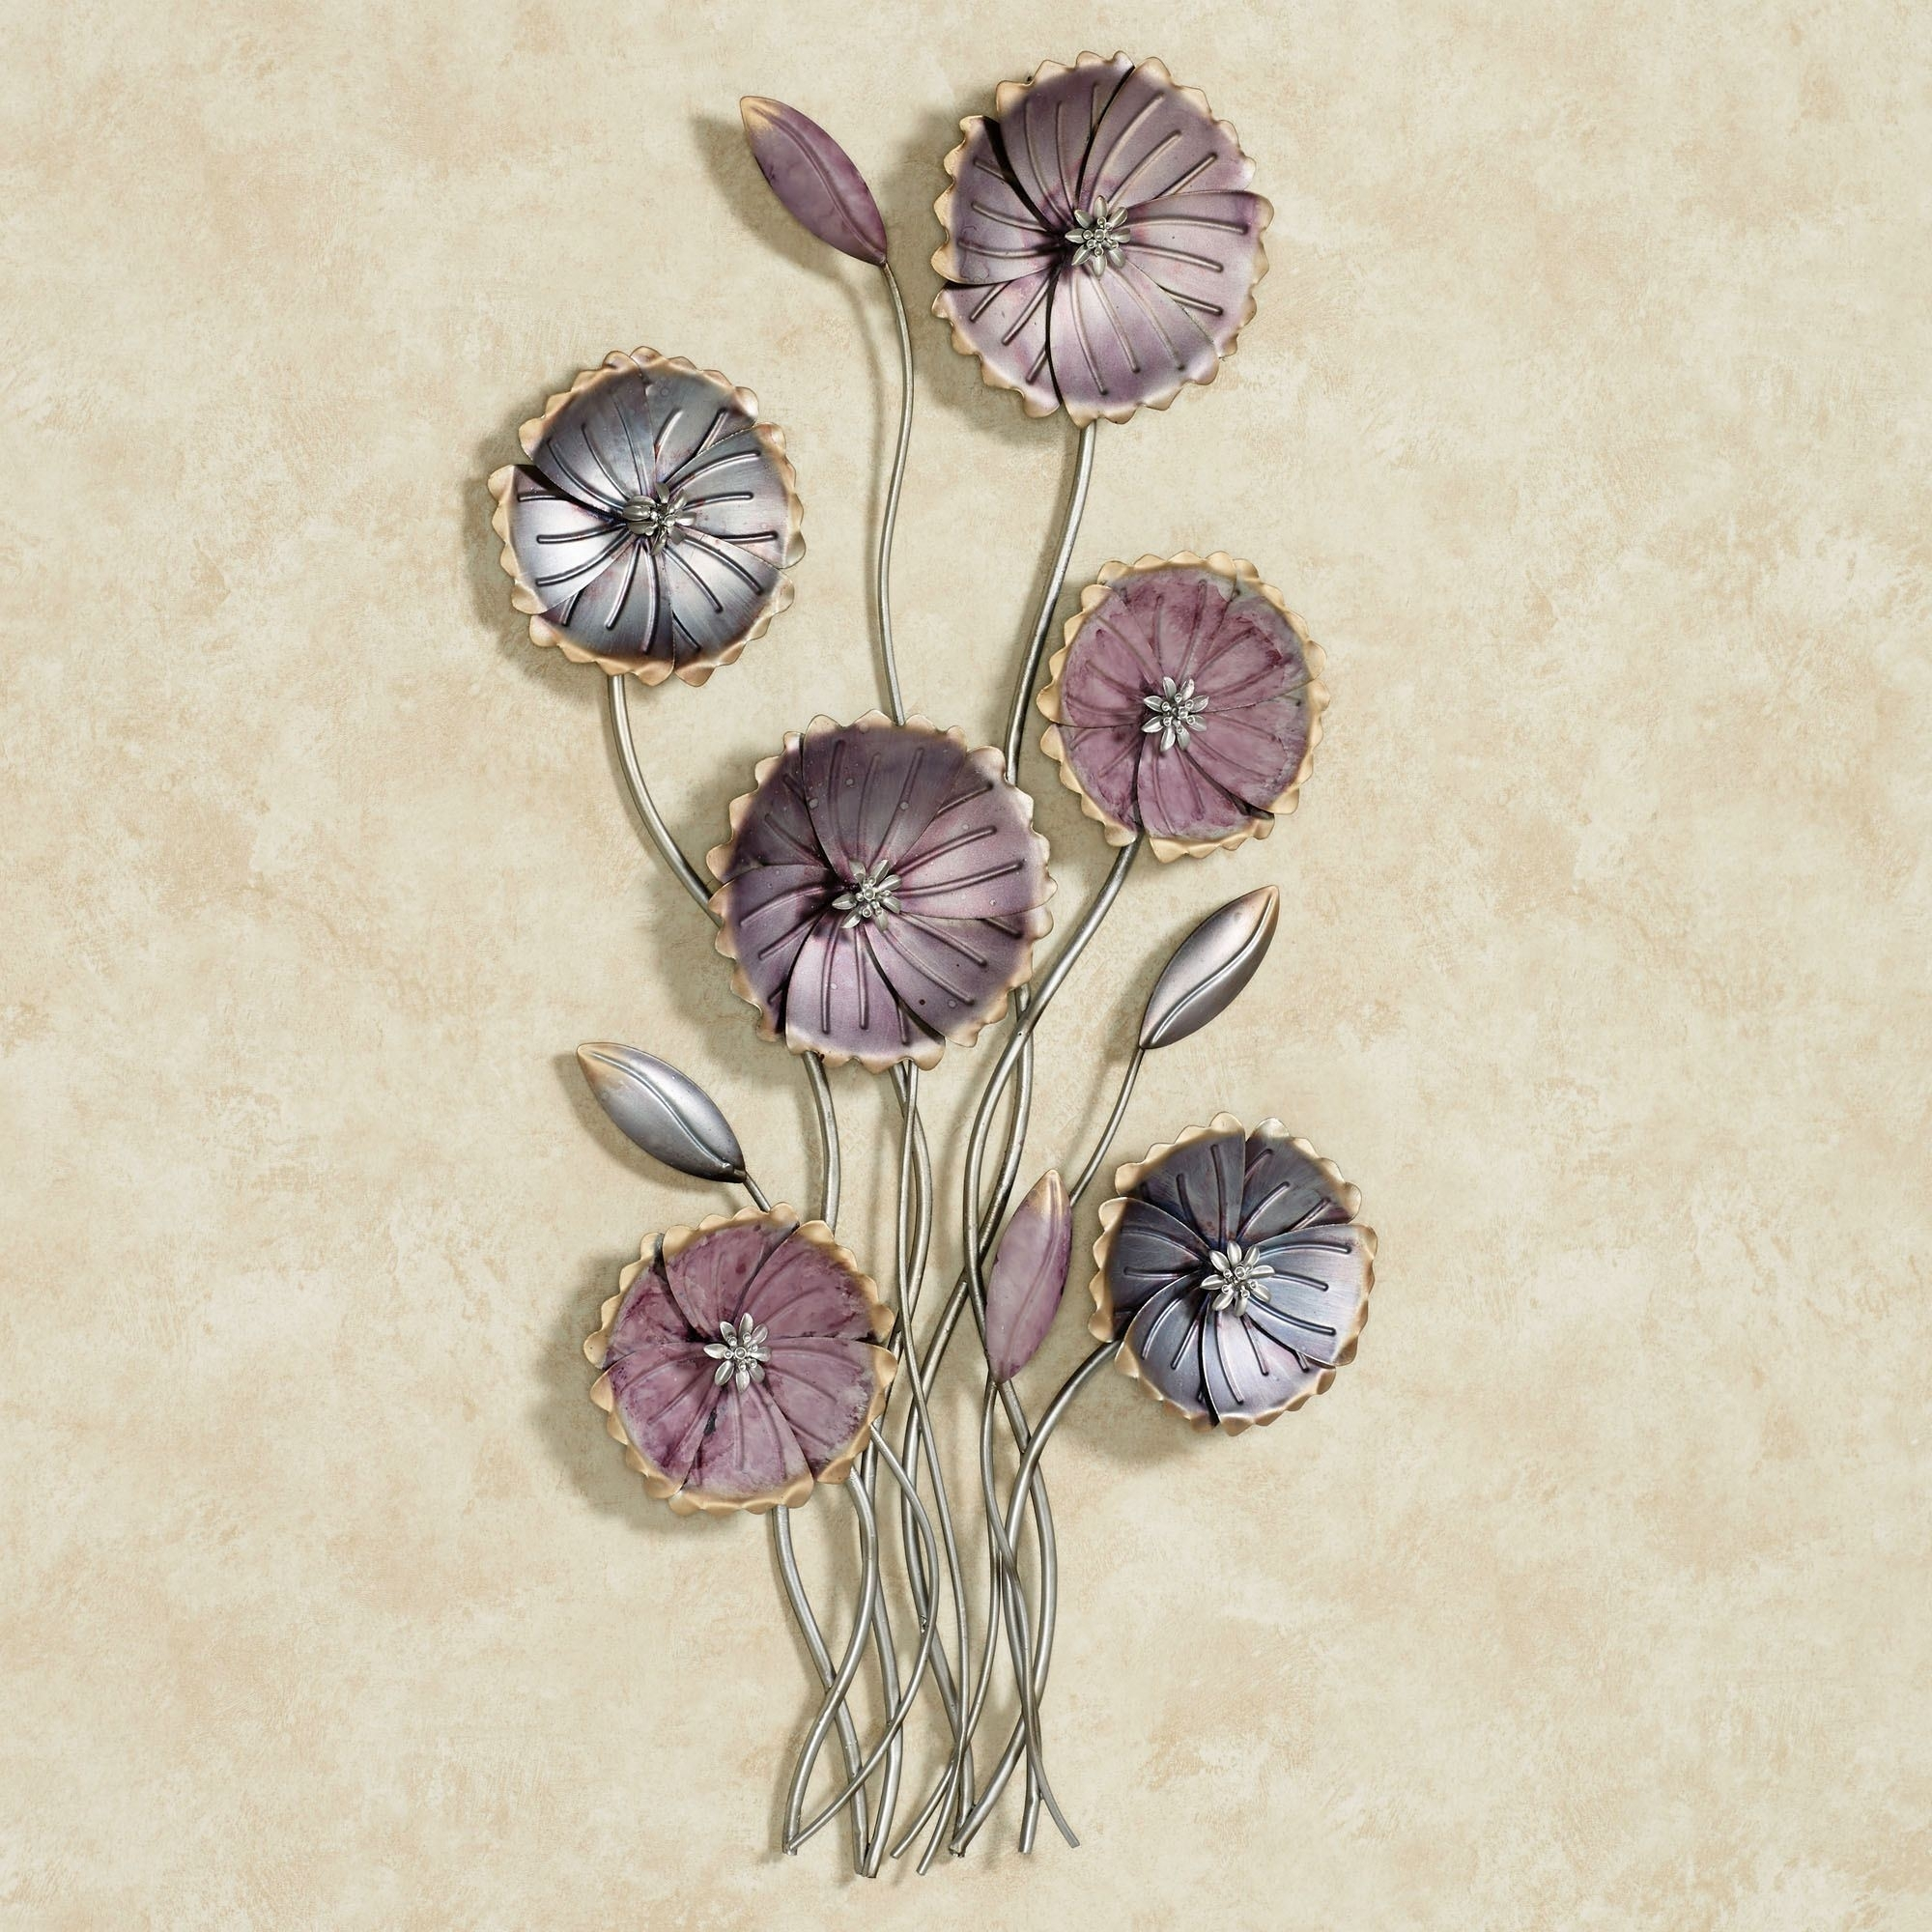 Decor: Purple Flower Kirklands Wall Art Metal With White Paint Wall In Newest Metal Flower Wall Art (View 15 of 15)